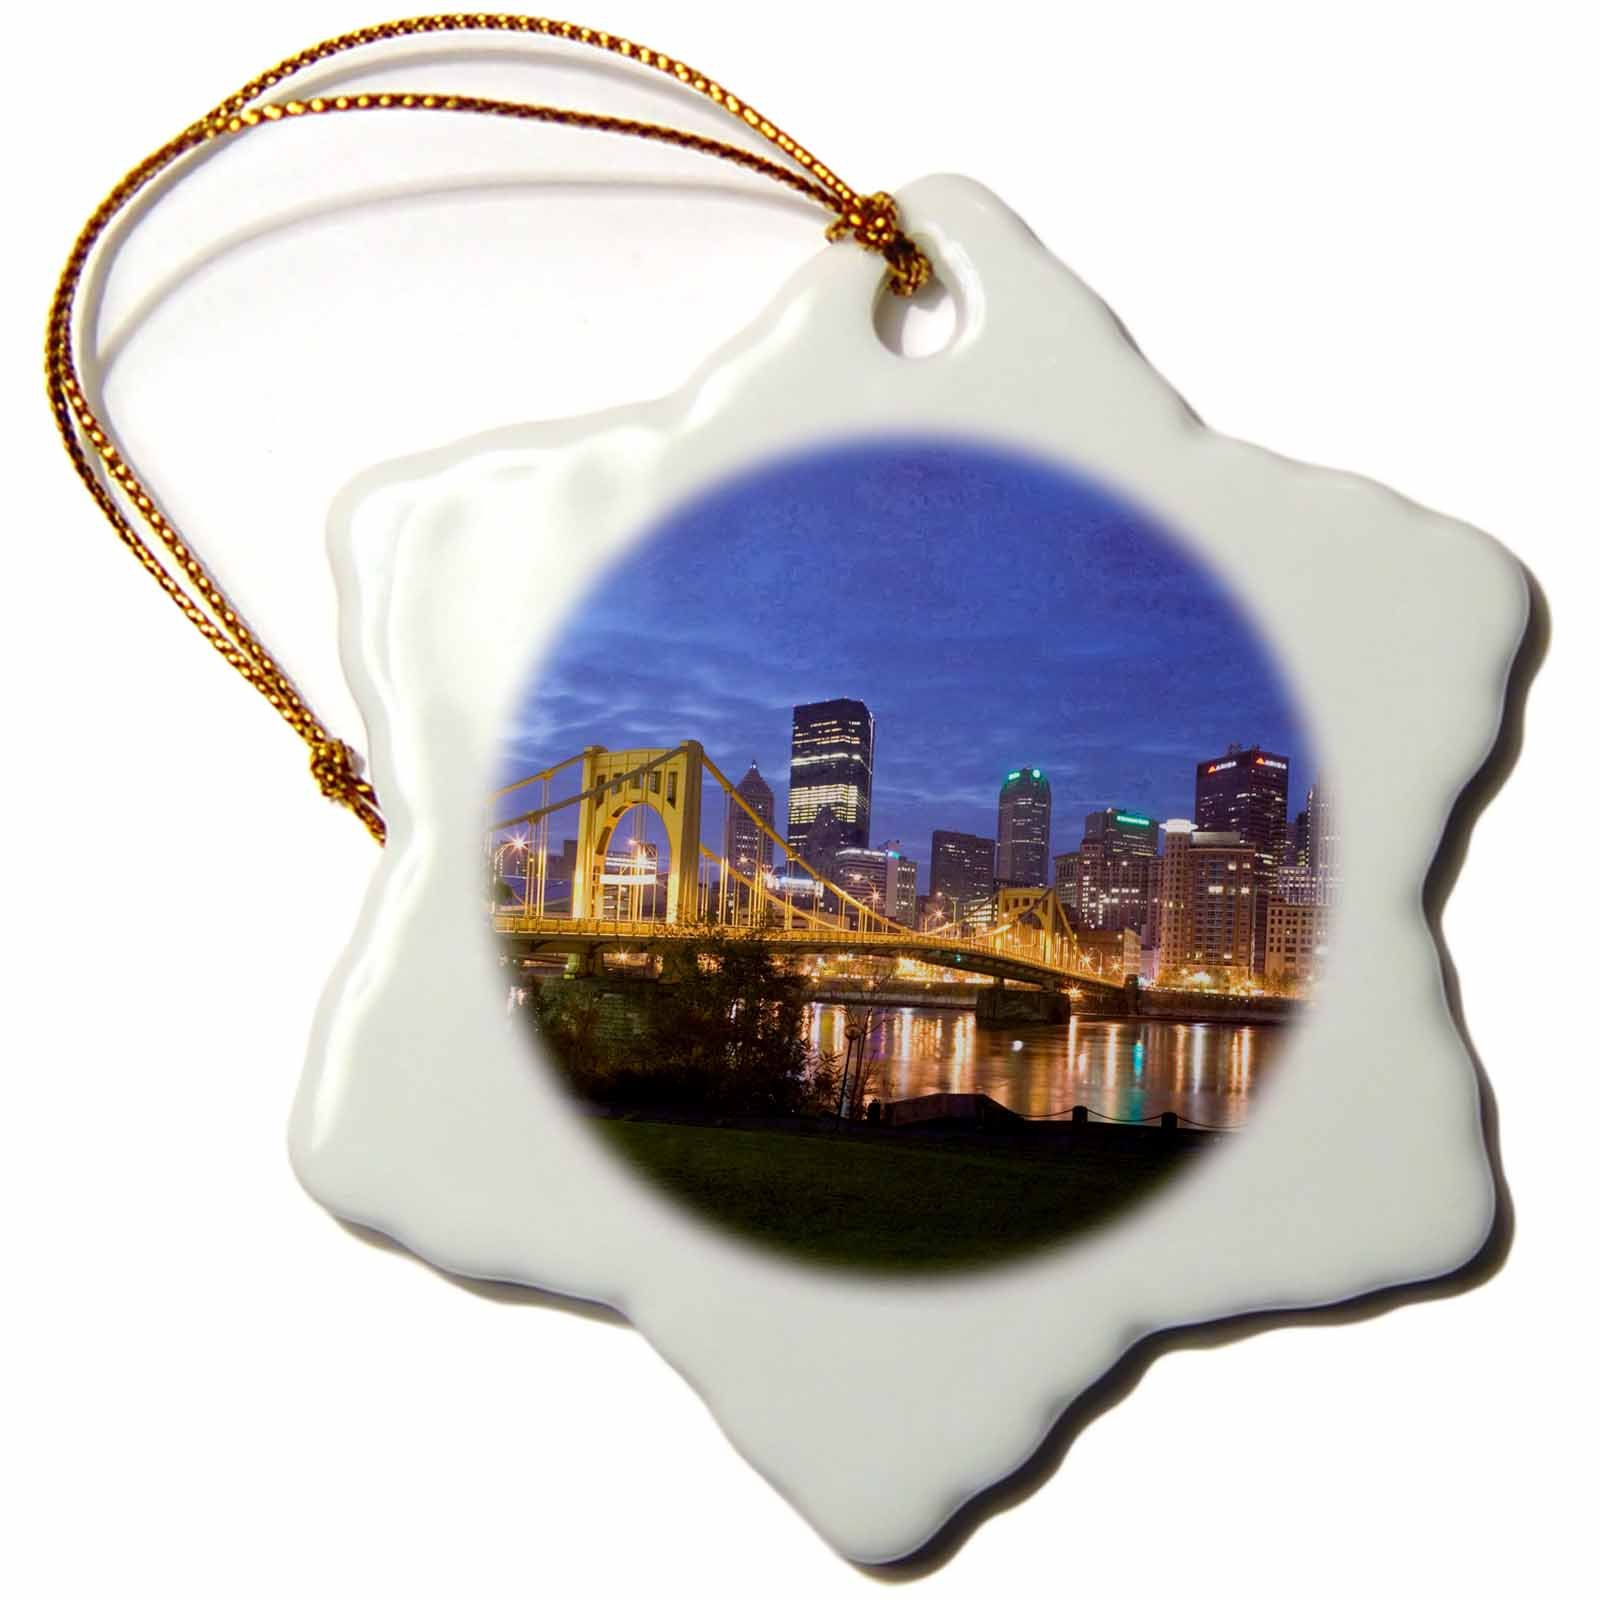 3dRose orn_94229_1 Pennsylvania Pittsburgh City Skyline Walter Bibikow Snowflake Decorative Hanging Ornament, Porcelain, 3-Inch